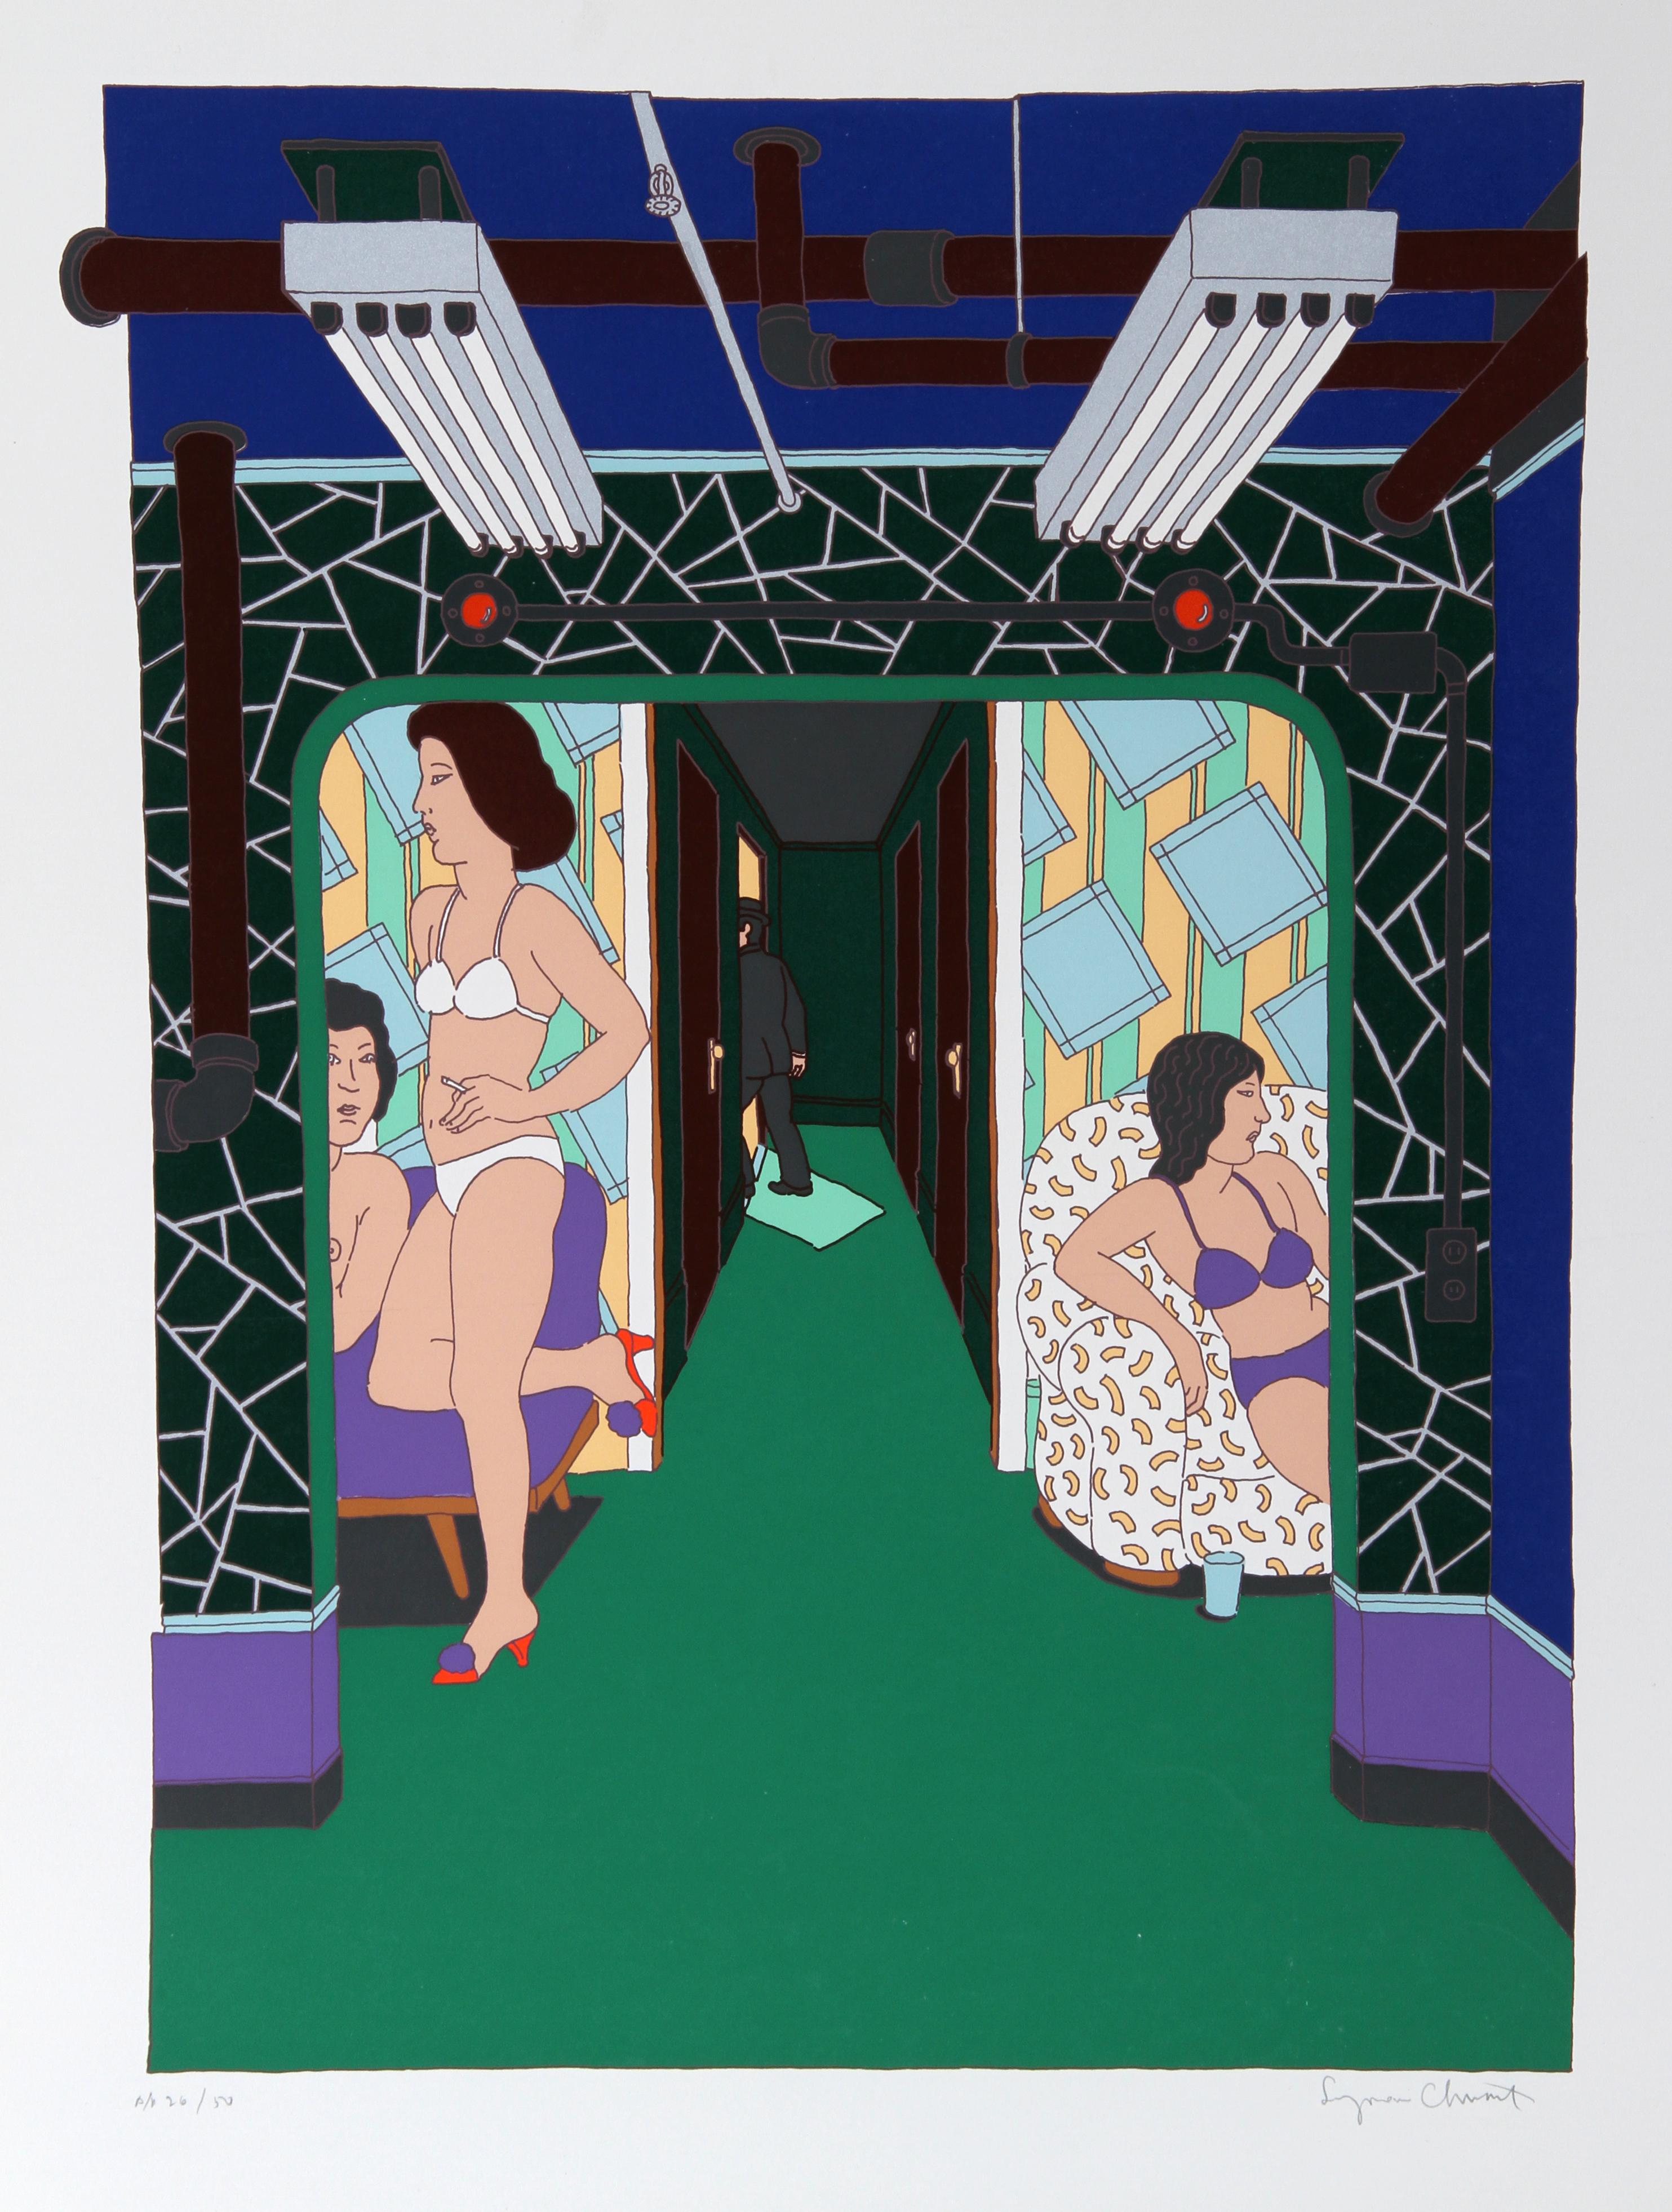 """""""The Massage Parlor"""", circa 1979, Serigraph by Seymour Chwast"""